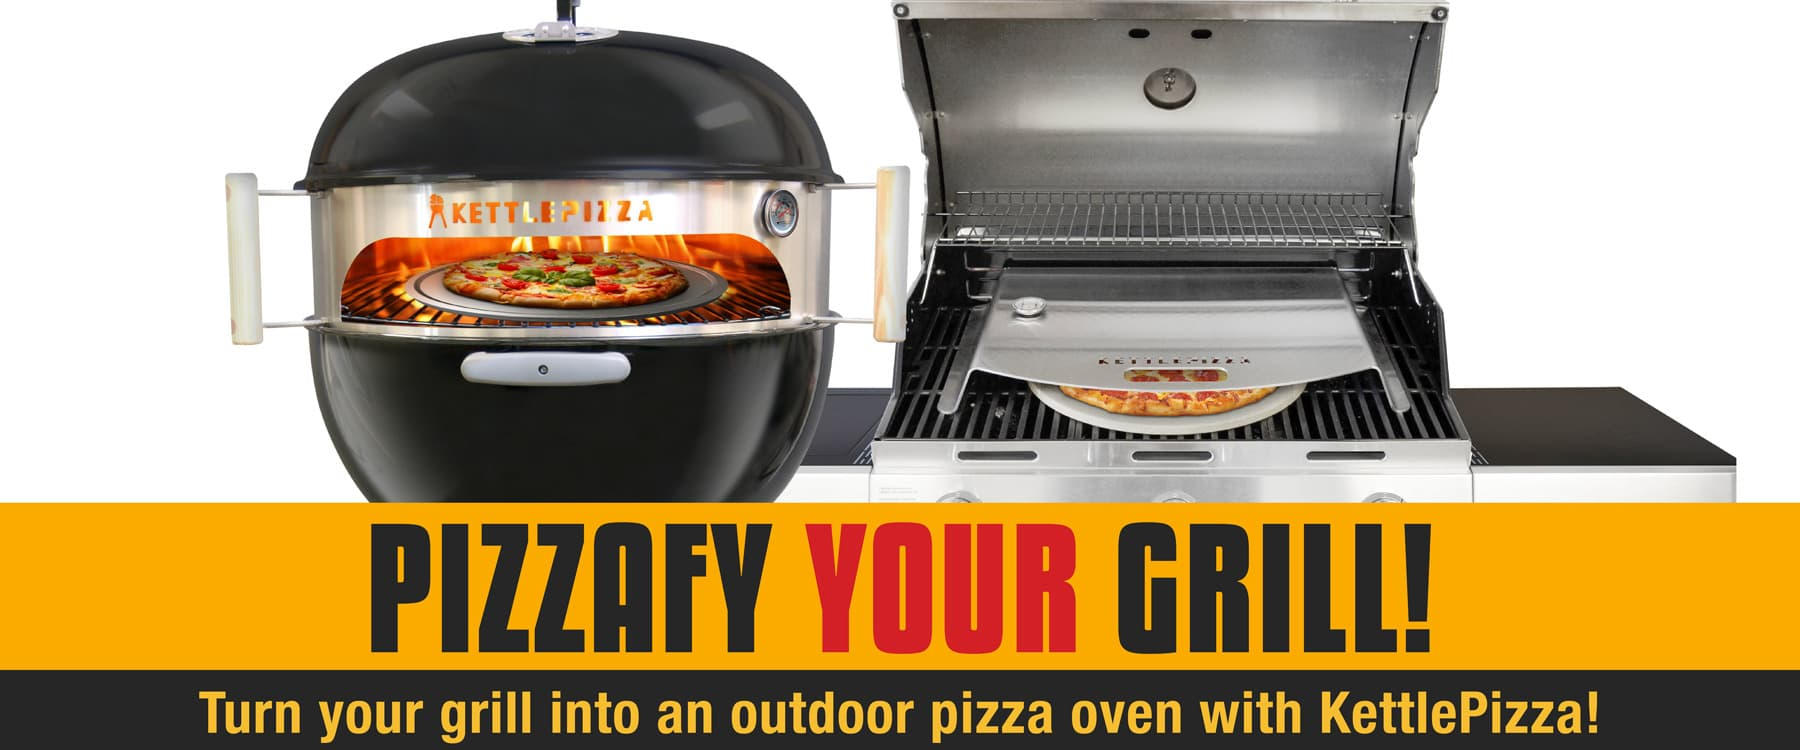 Weber Gas Grill Parts >> Gas Grill Pizza Oven Kits - Weber Grill Pizza Oven Kits - KettlePizza.com